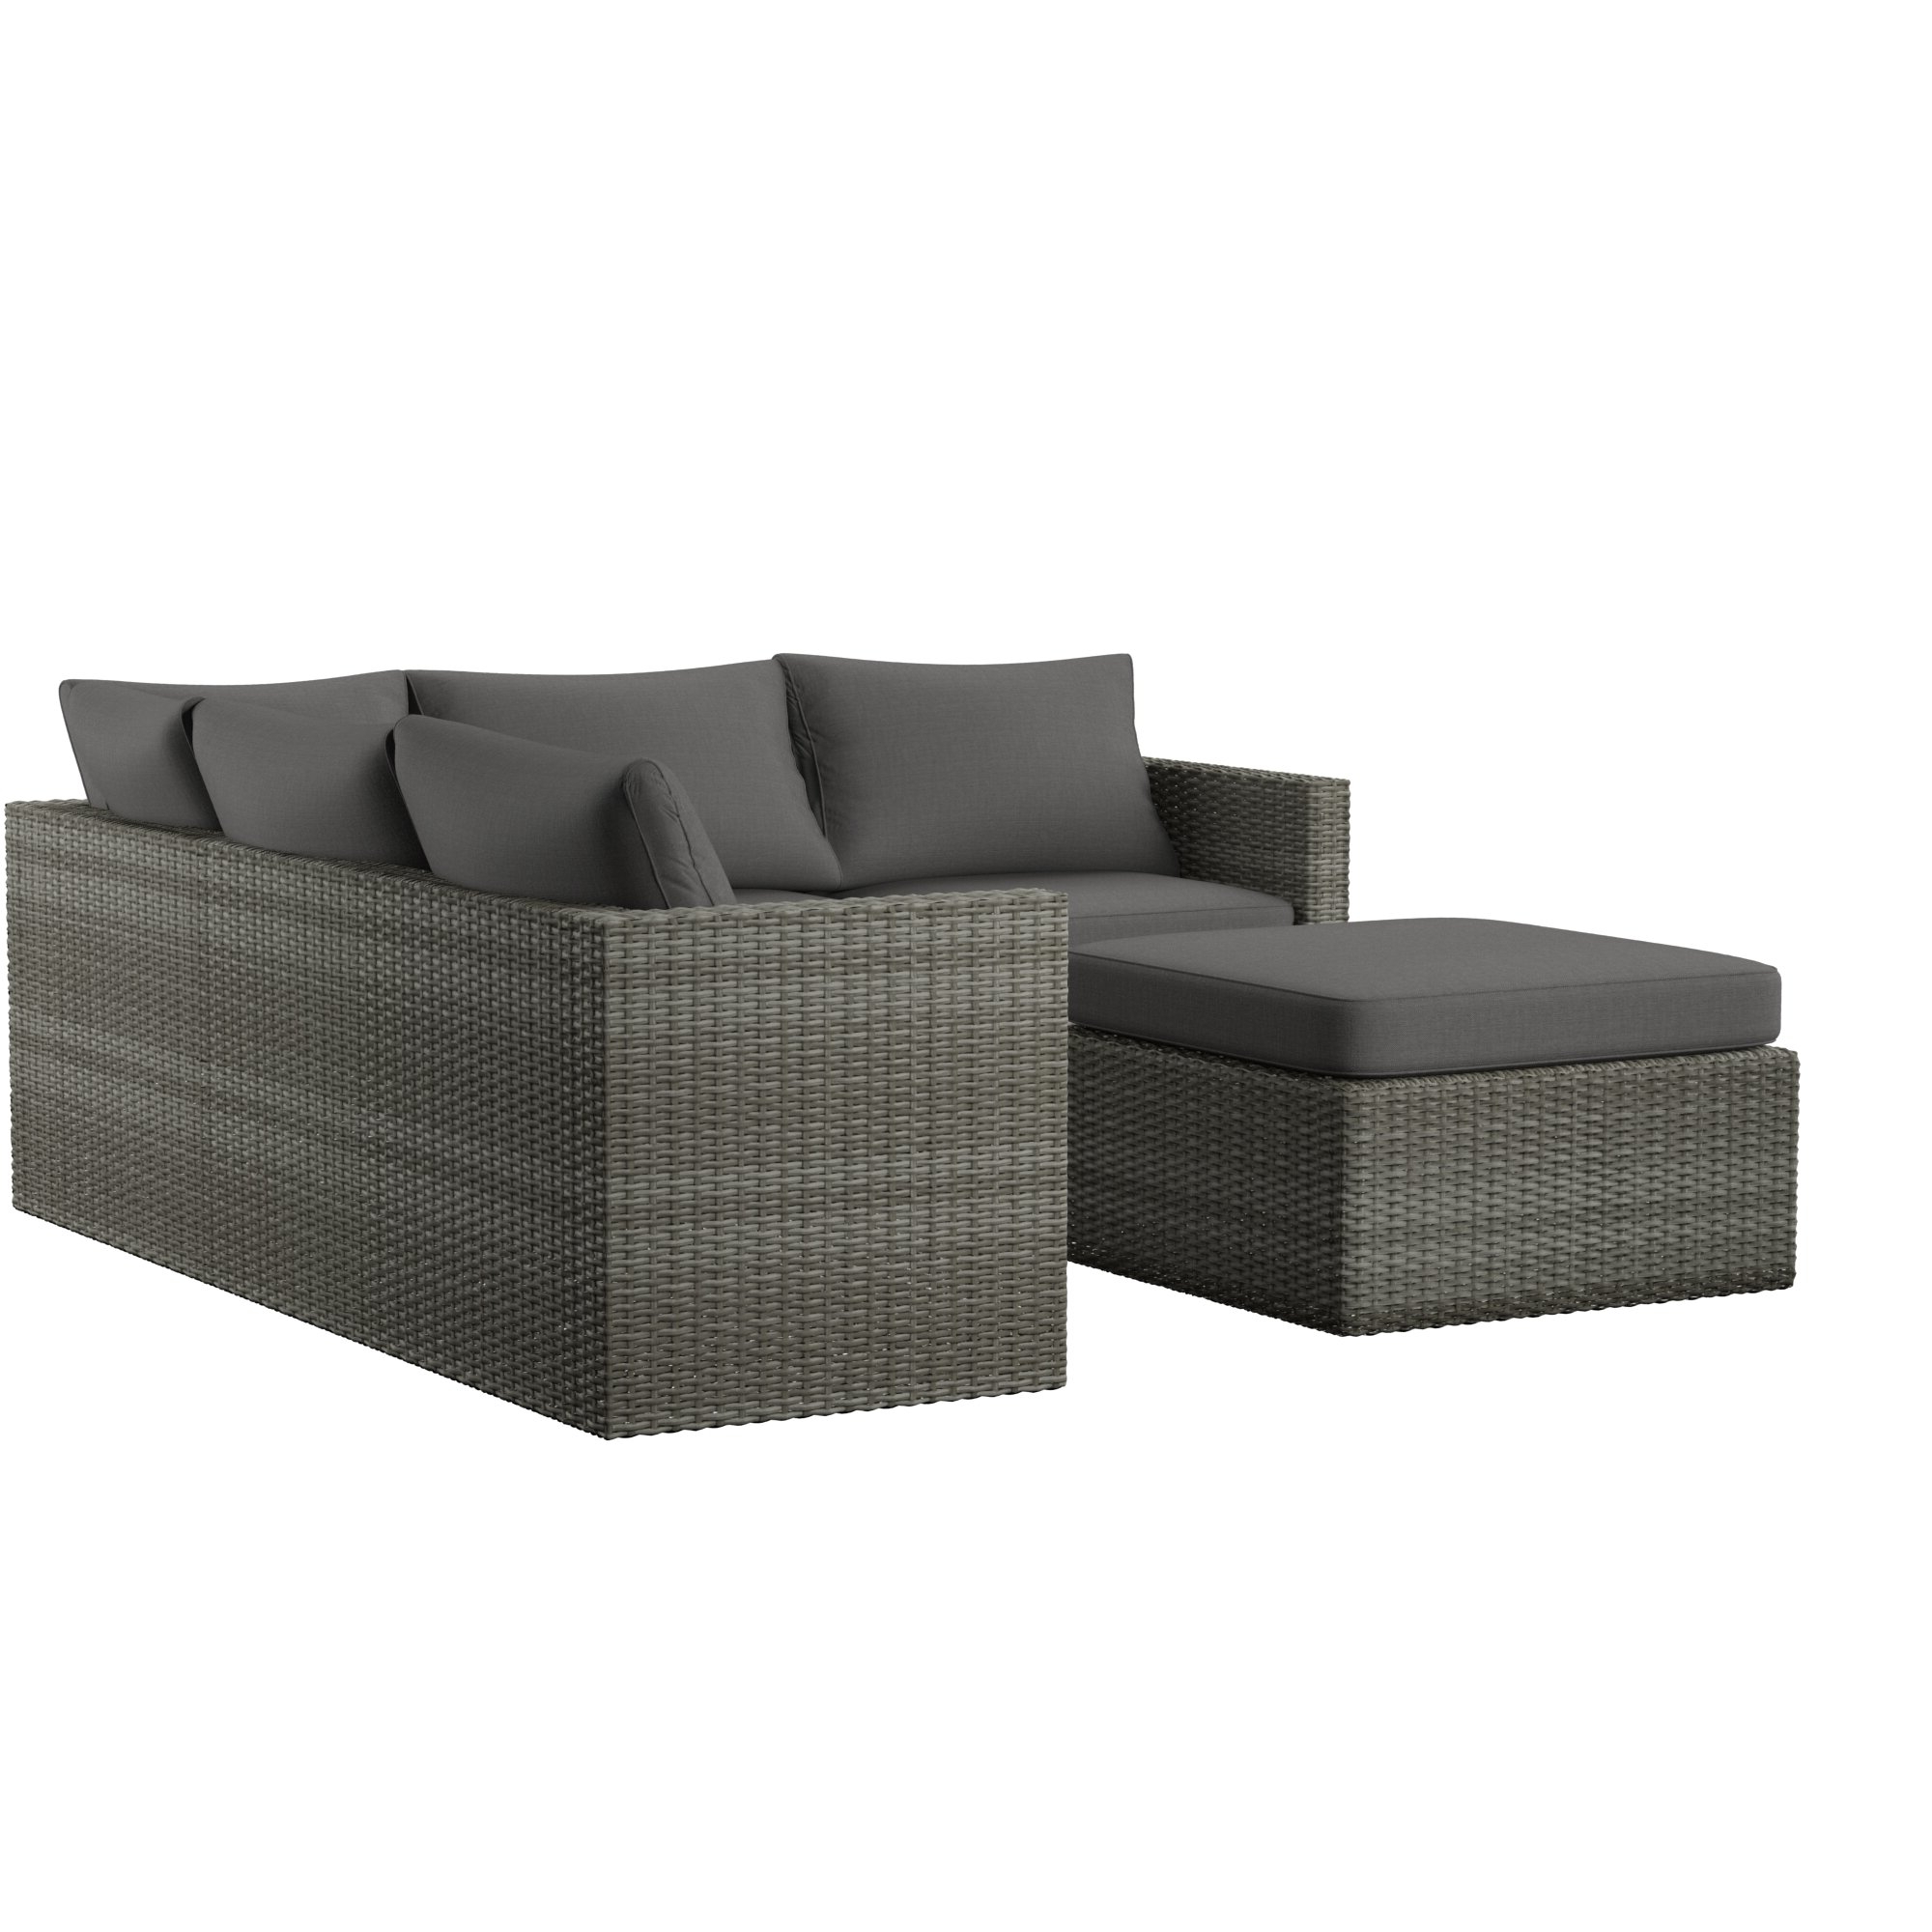 Most Recent Belton Patio Sofas With Cushions For Lorentzen Patio Sectional With Cushions (View 7 of 25)